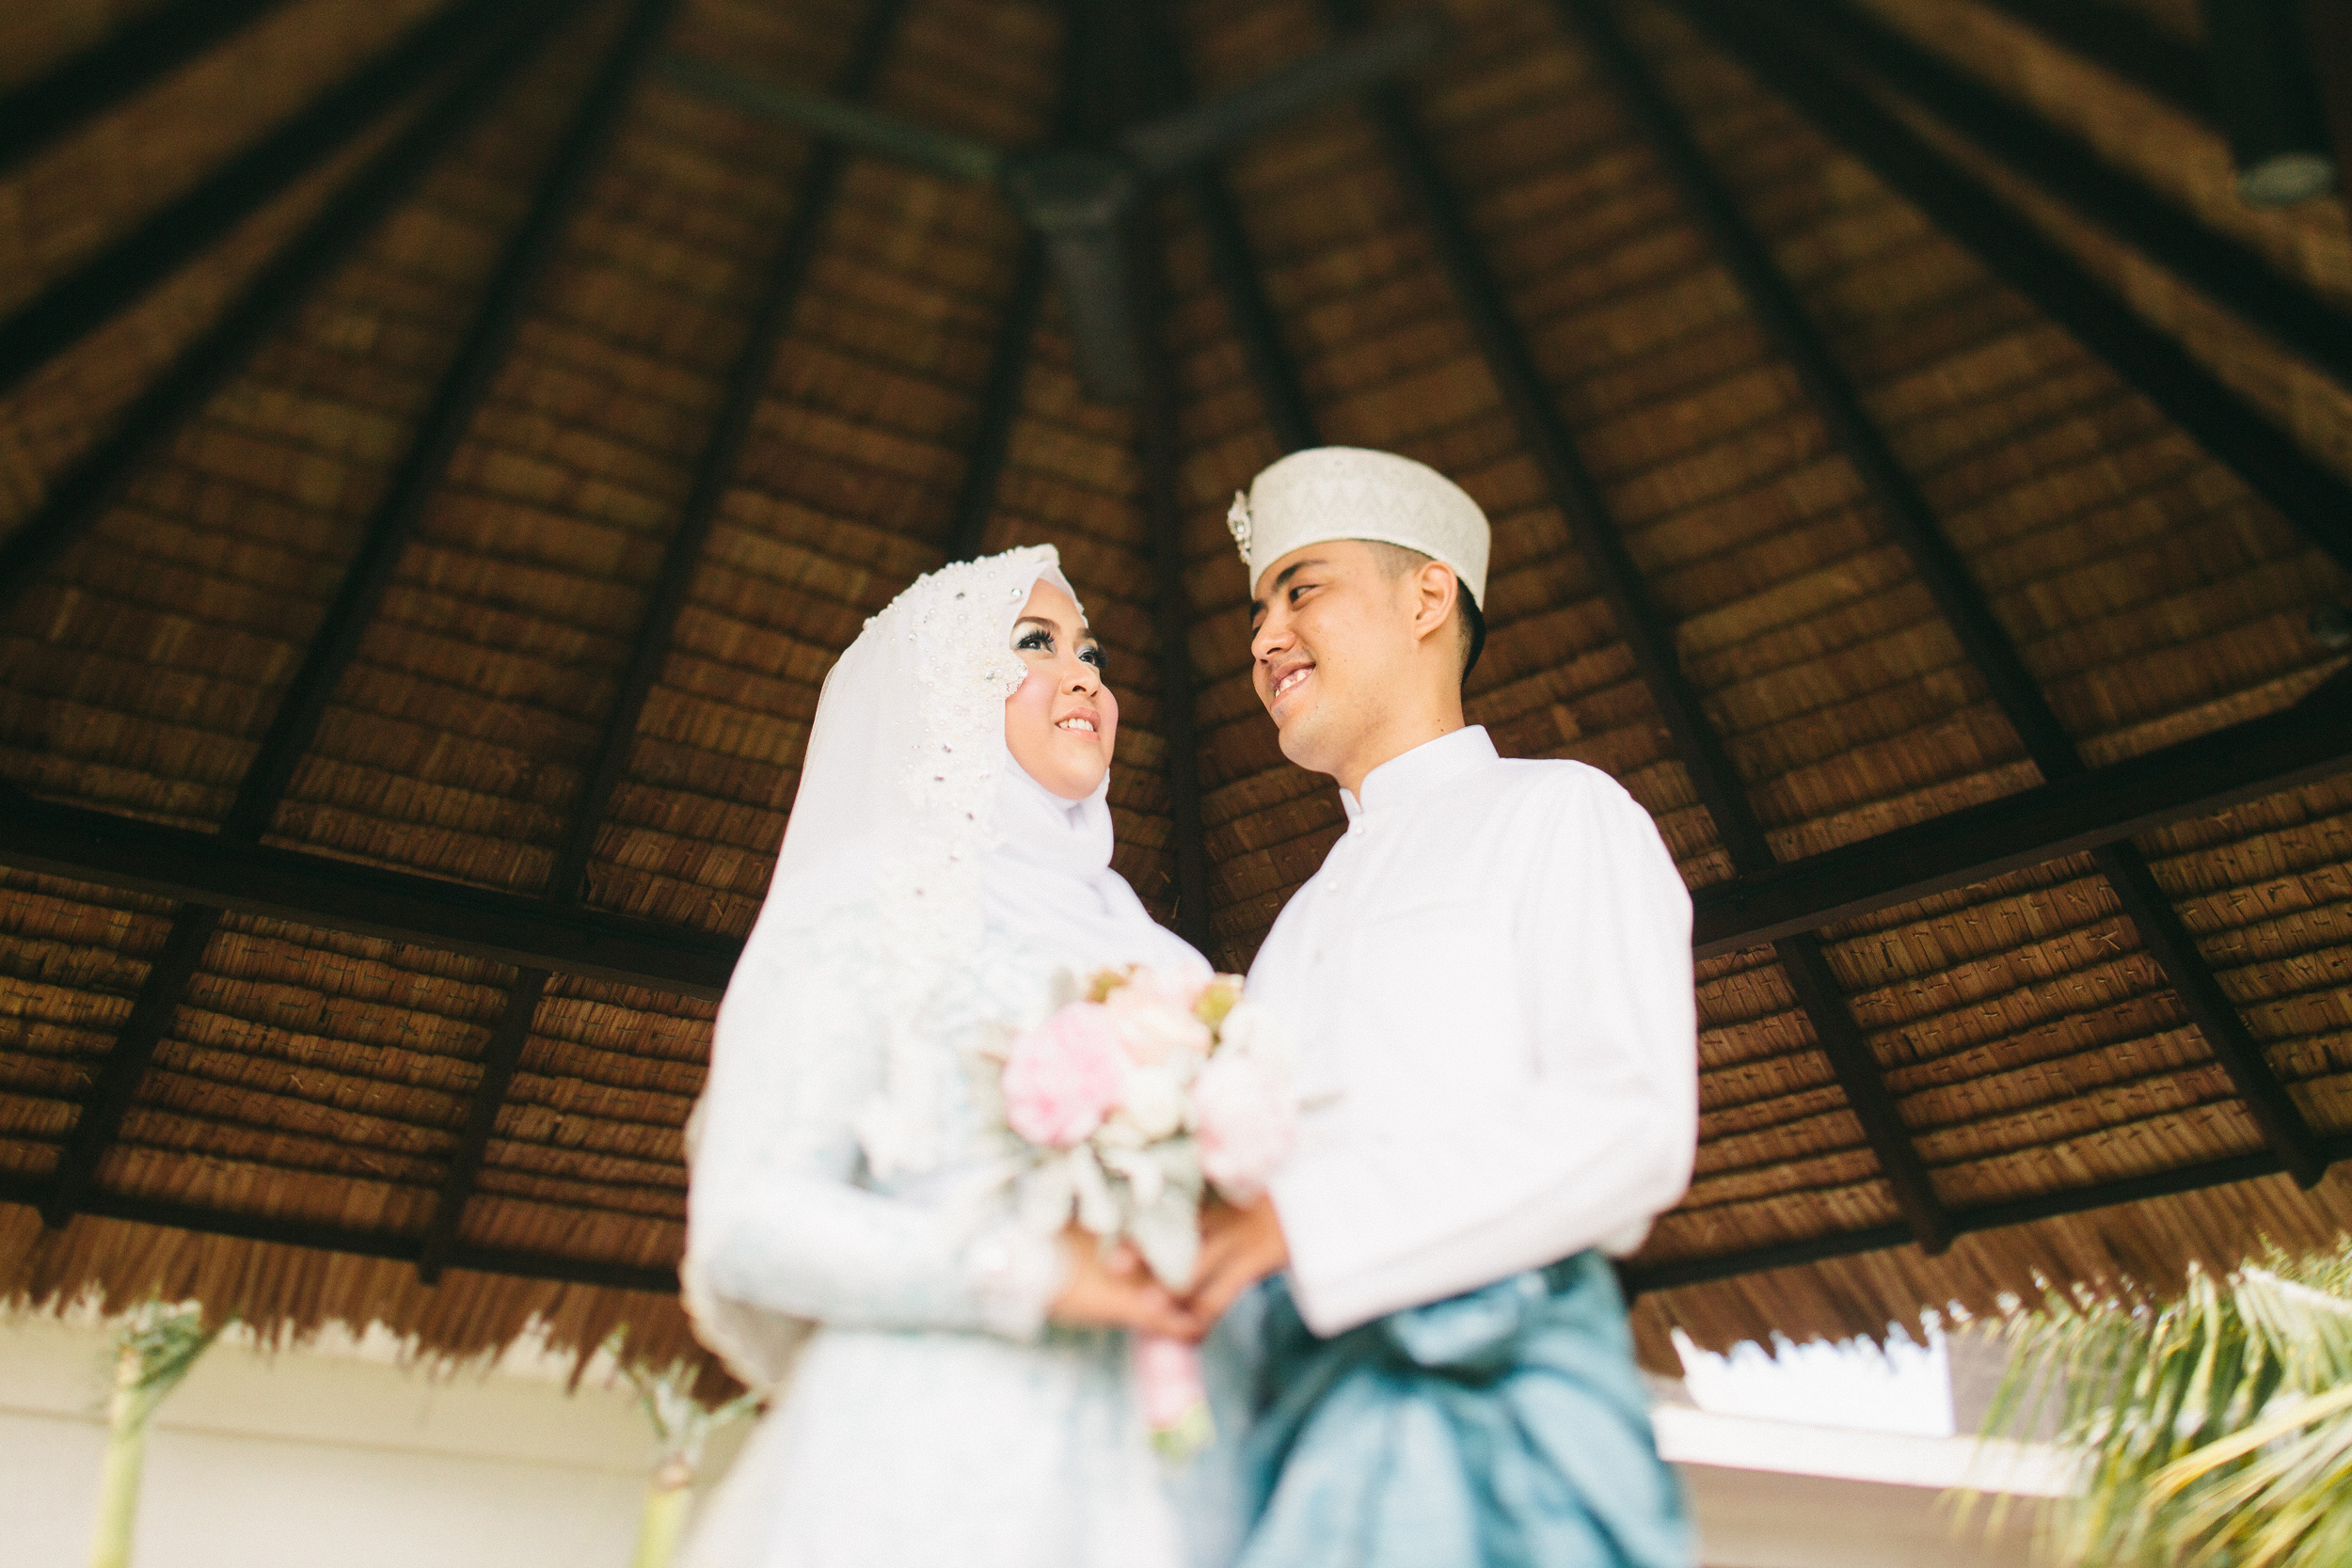 singapore-wedding-photographer-wemadethese-aisyah-helmi-29.jpg